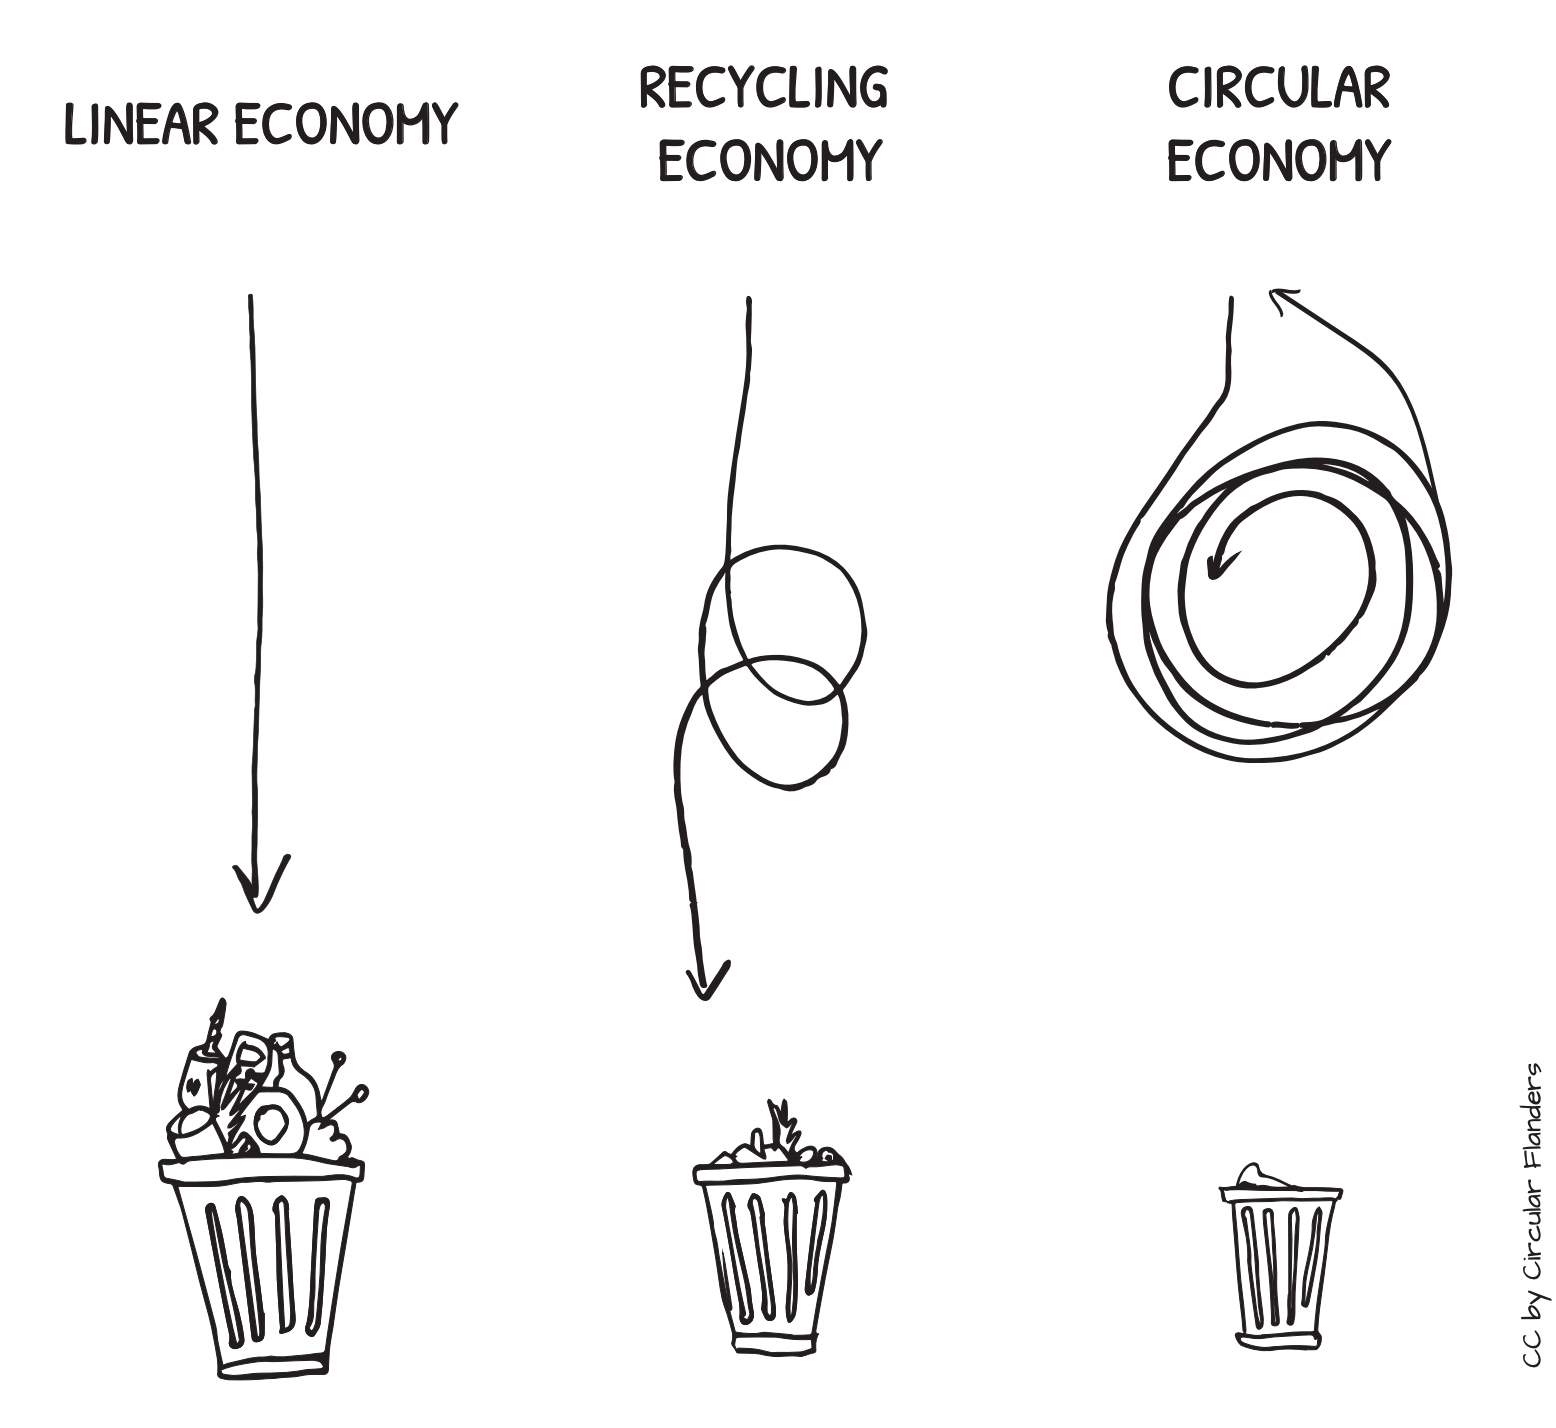 A shift from linear to a circular economy will help reduce the waste generated and stress on raw materials